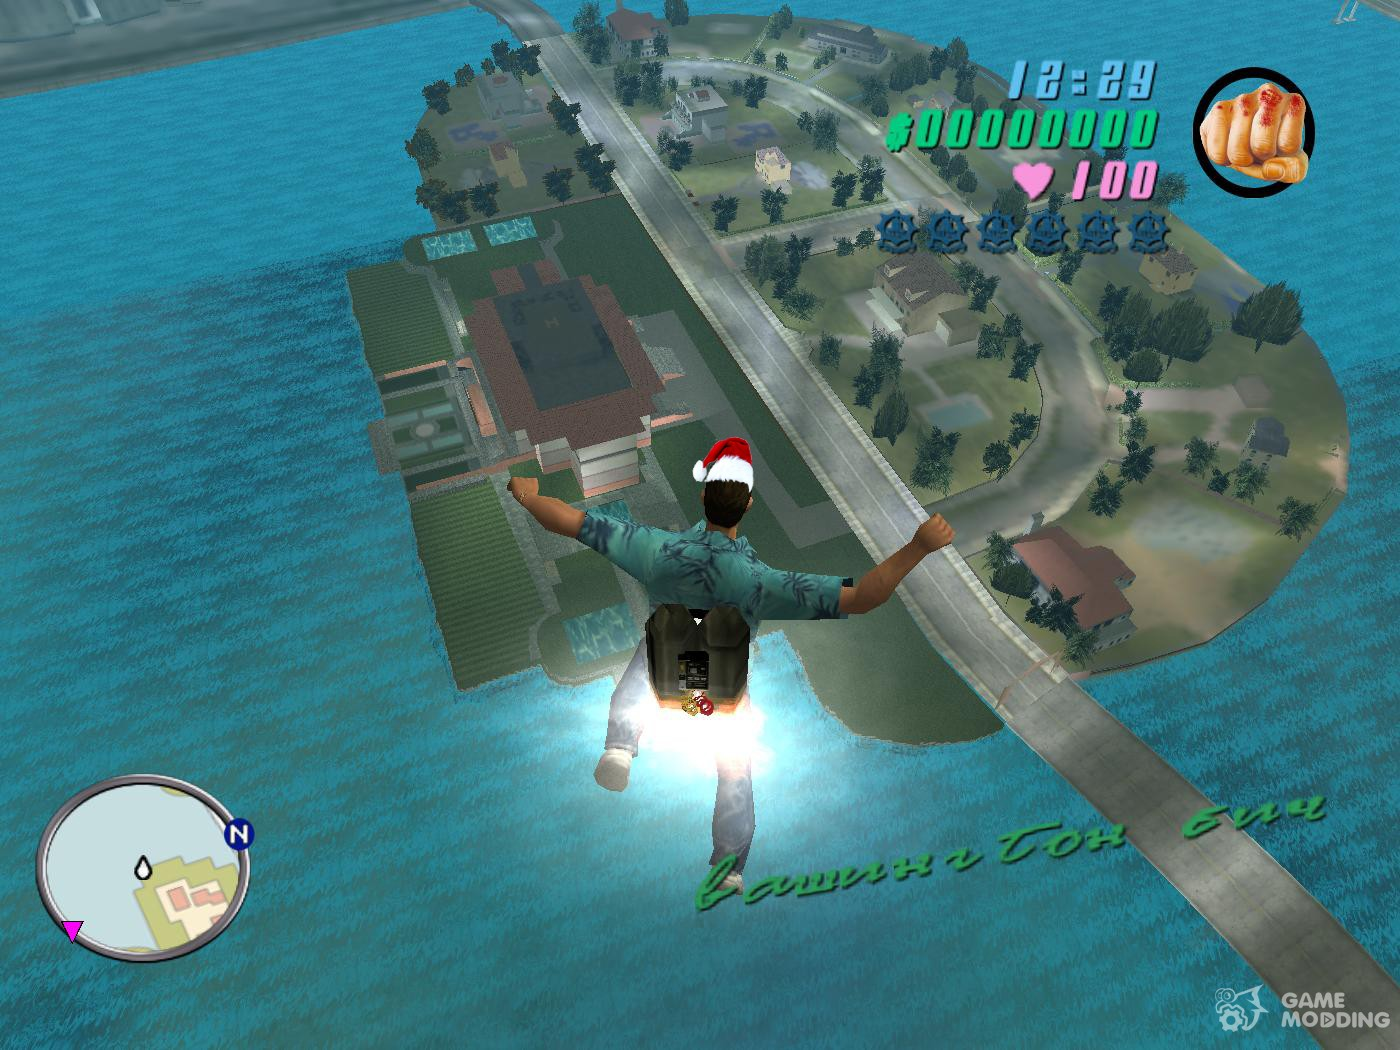 Gta Vice City Jetpack Mod - vegalobirthday